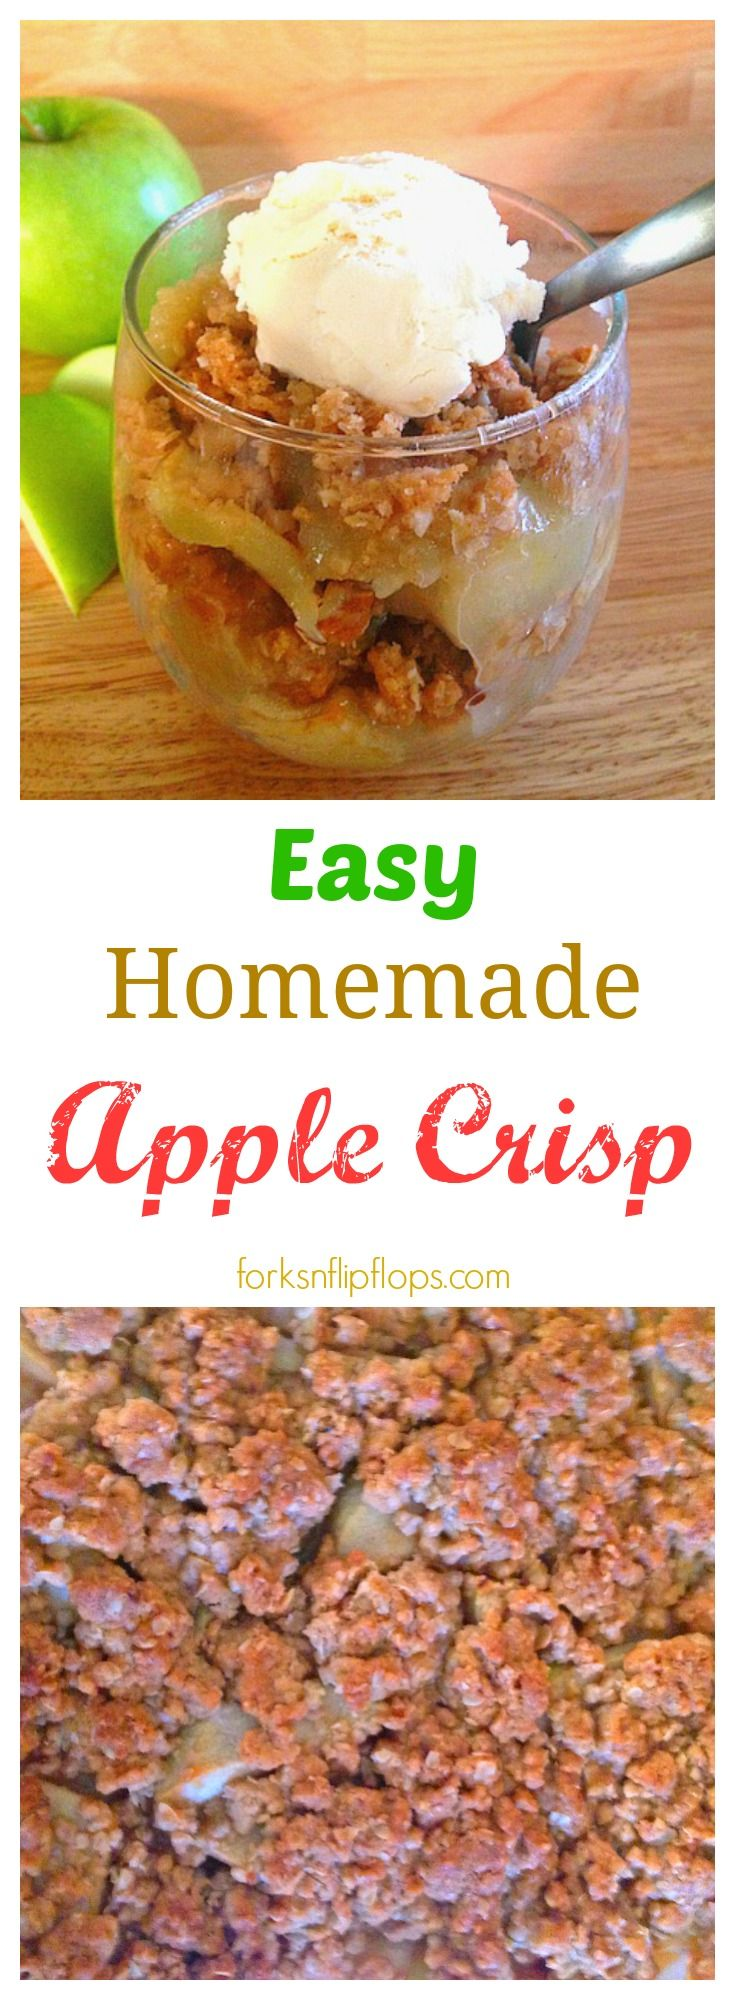 Easy Homemade Apple Crisp dessert is a perfect Fall recipe that melts in your mouth! It is the best apple crisp ever!